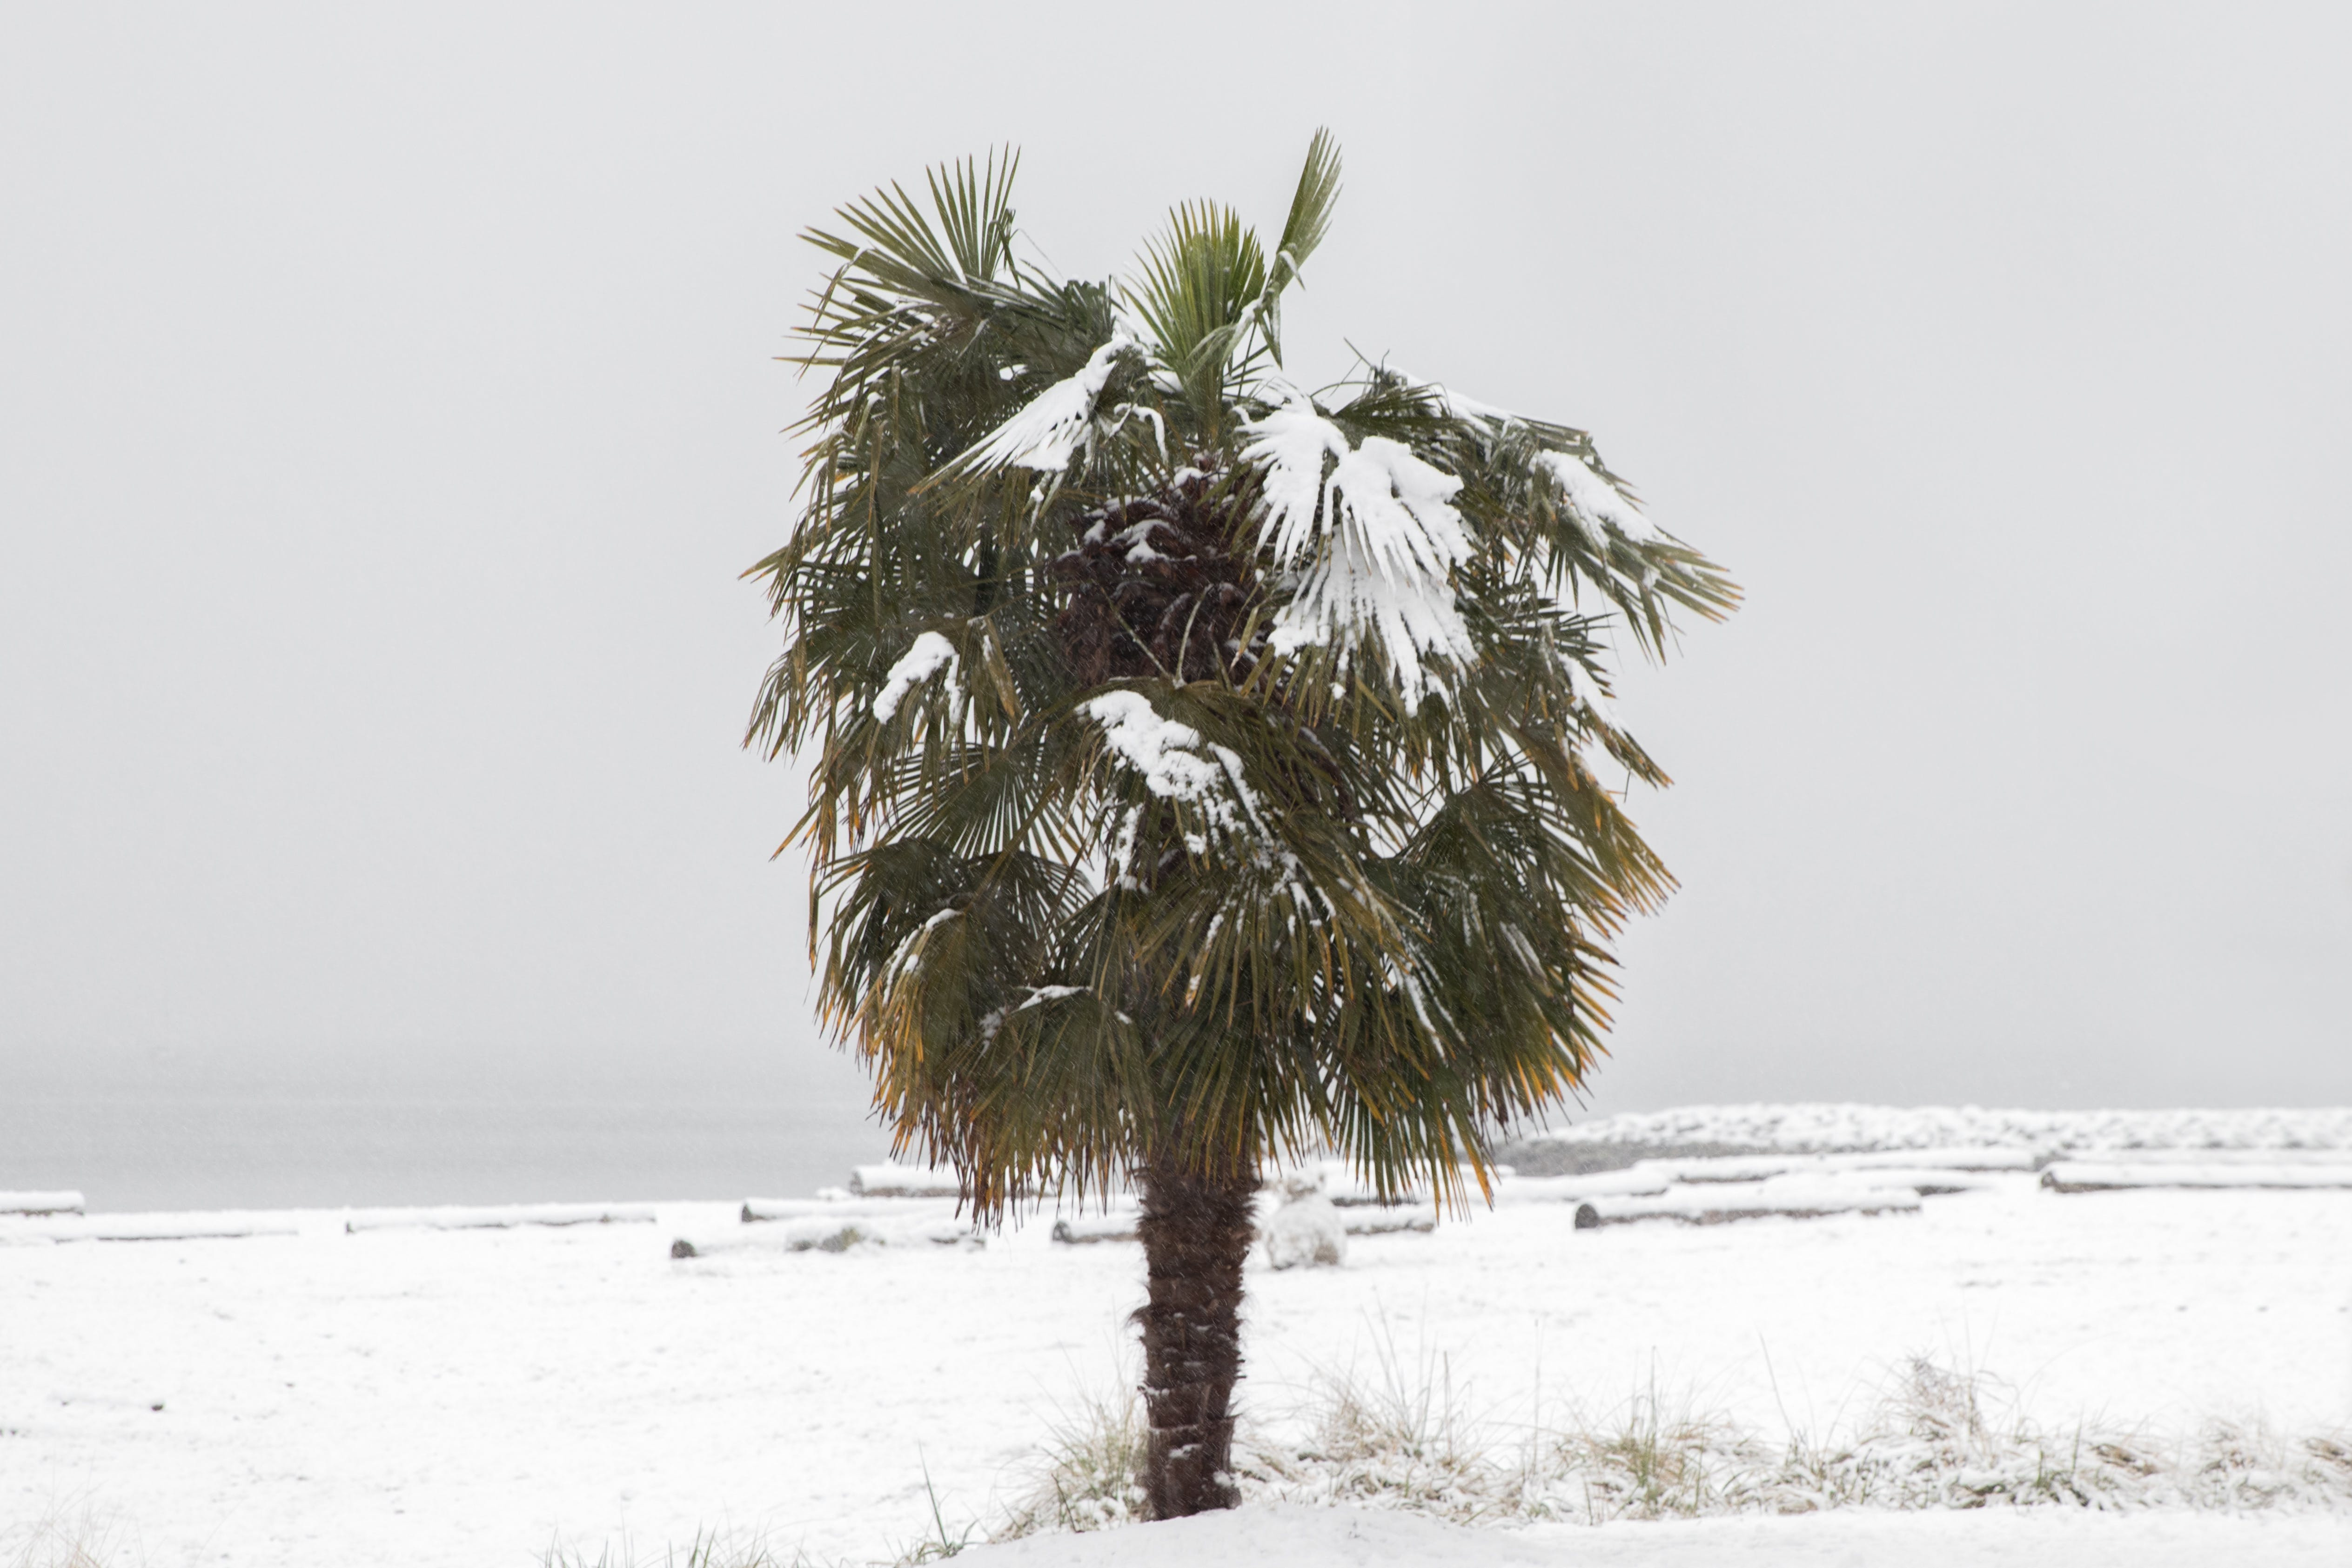 Free stock photo of ocean, palm tree, winter